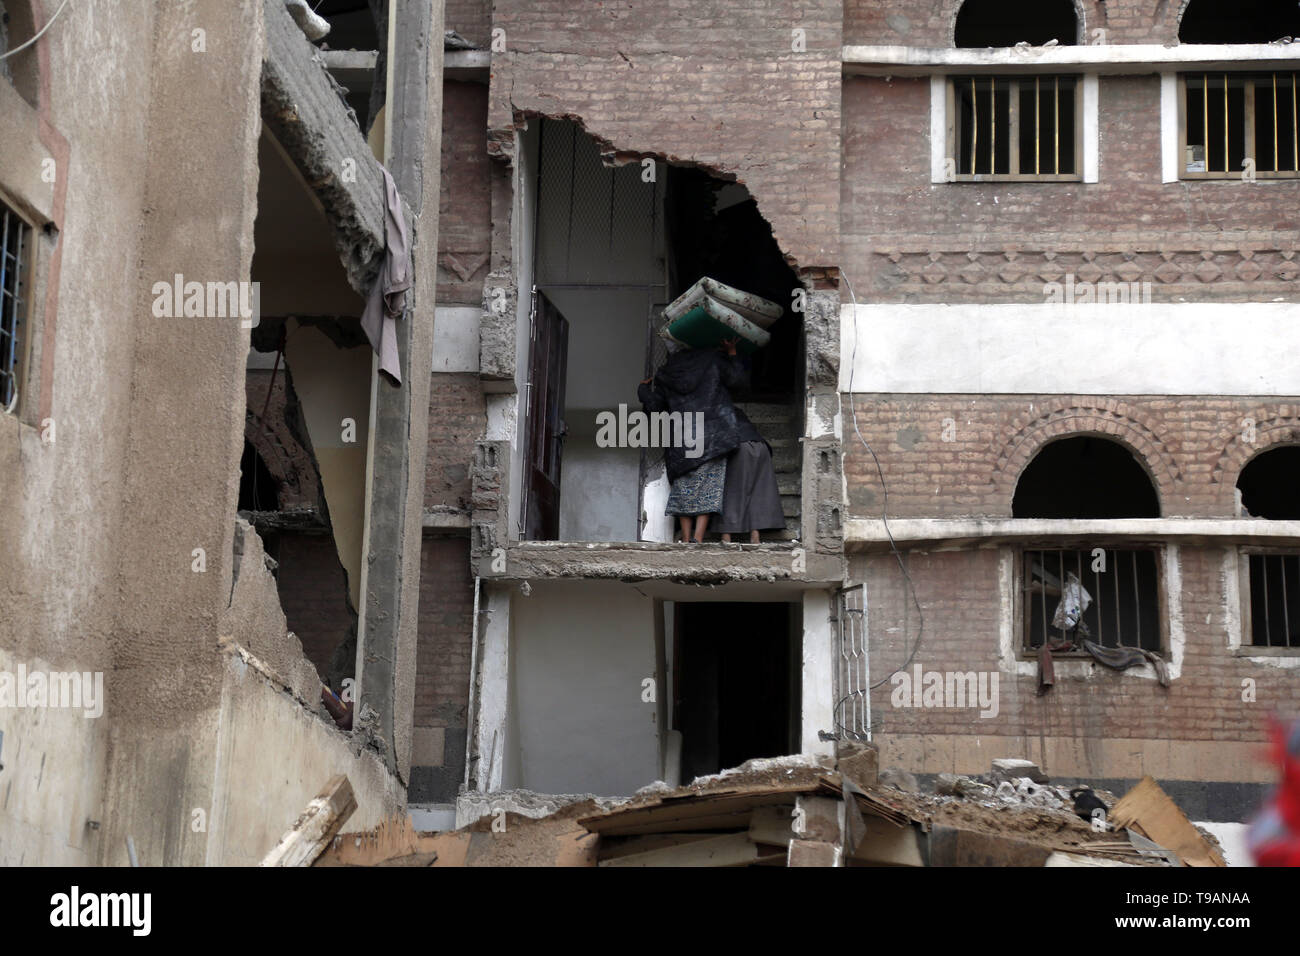 Sanaa, Yemen. 17th May, 2019. People take furniture out of a building after it was hit in airstrikes in Sanaa, Yemen, on May 17, 2019. The Saudi Arabia-led coalition launched airstrikes on Houthi rebels' targets in the Yemeni capital Sanaa on Thursday morning, causing civilian casualties and damages, authorities and local residents said. Credit: Mohammed Mohammed/Xinhua/Alamy Live News - Stock Image